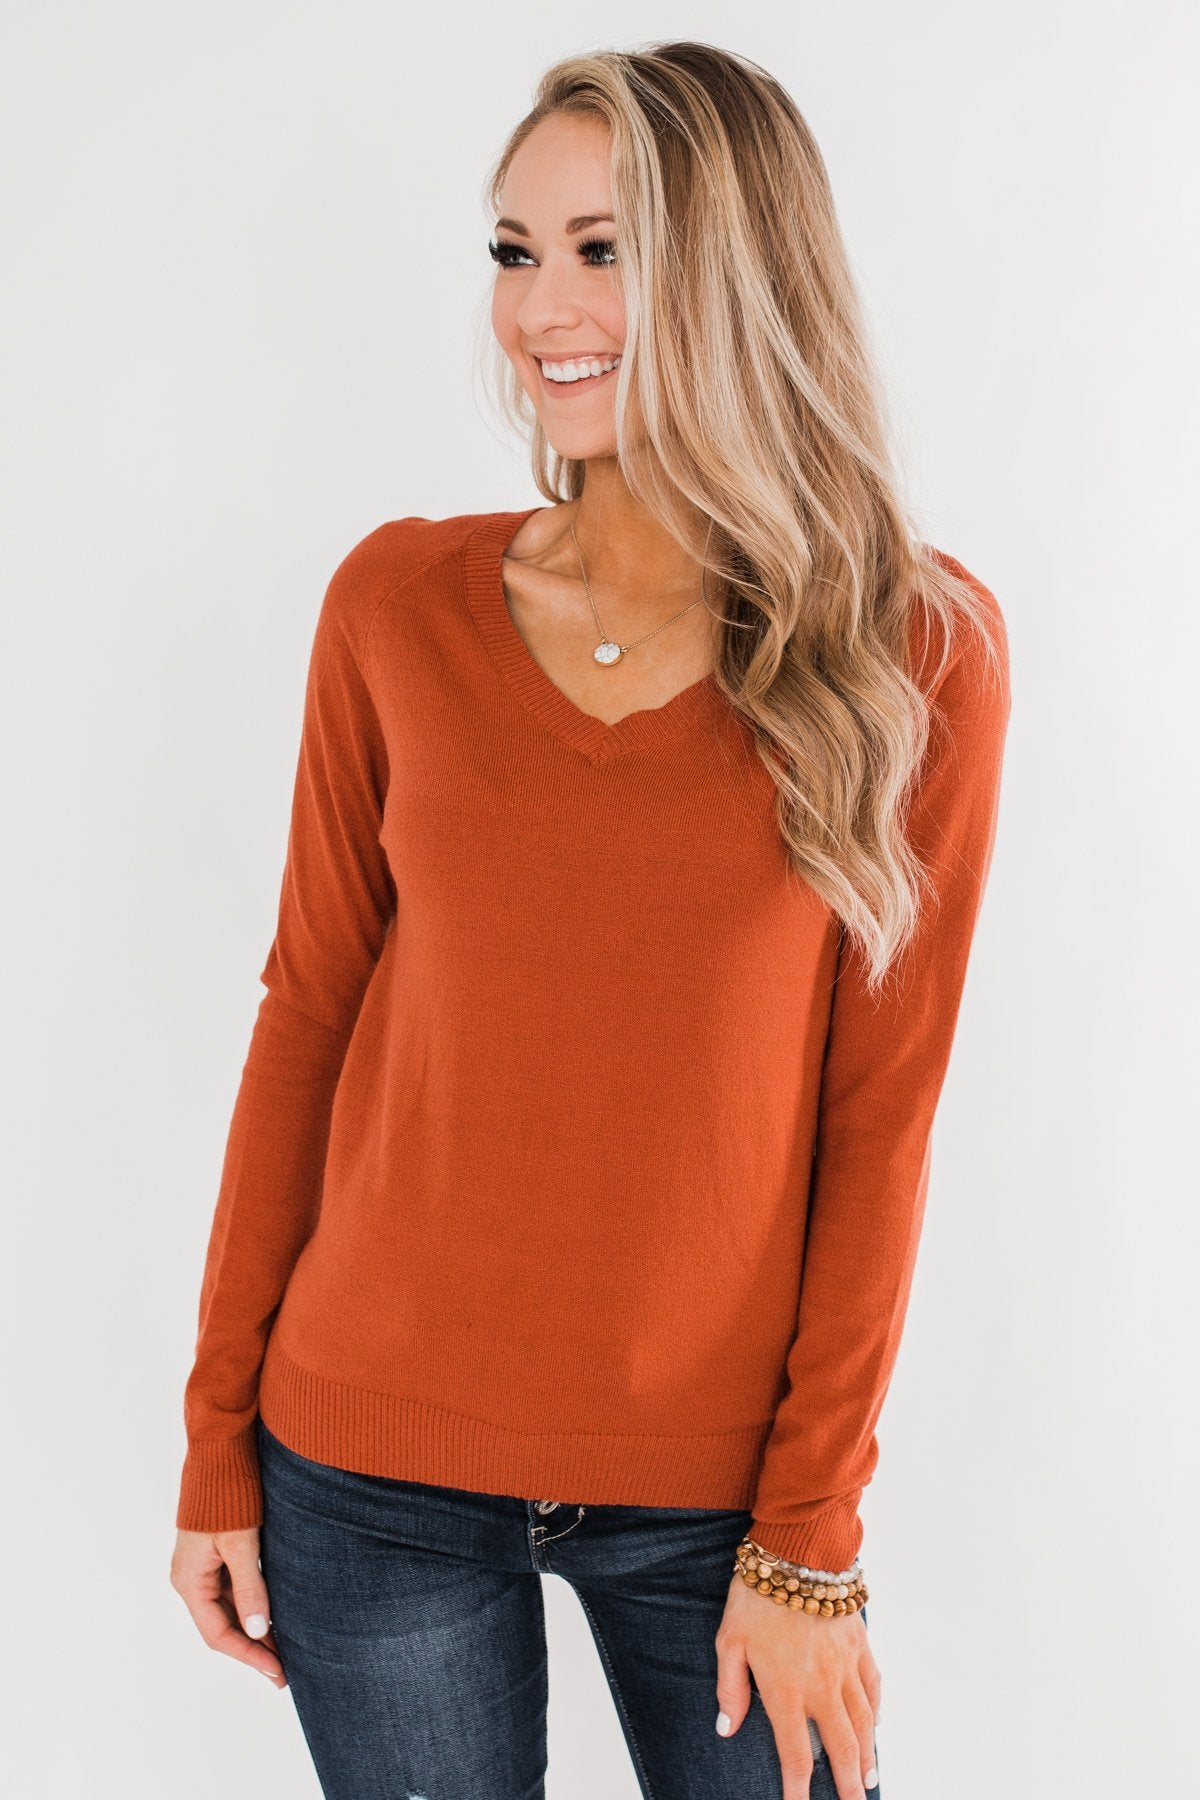 Never Felt This Way Sweater- Copper